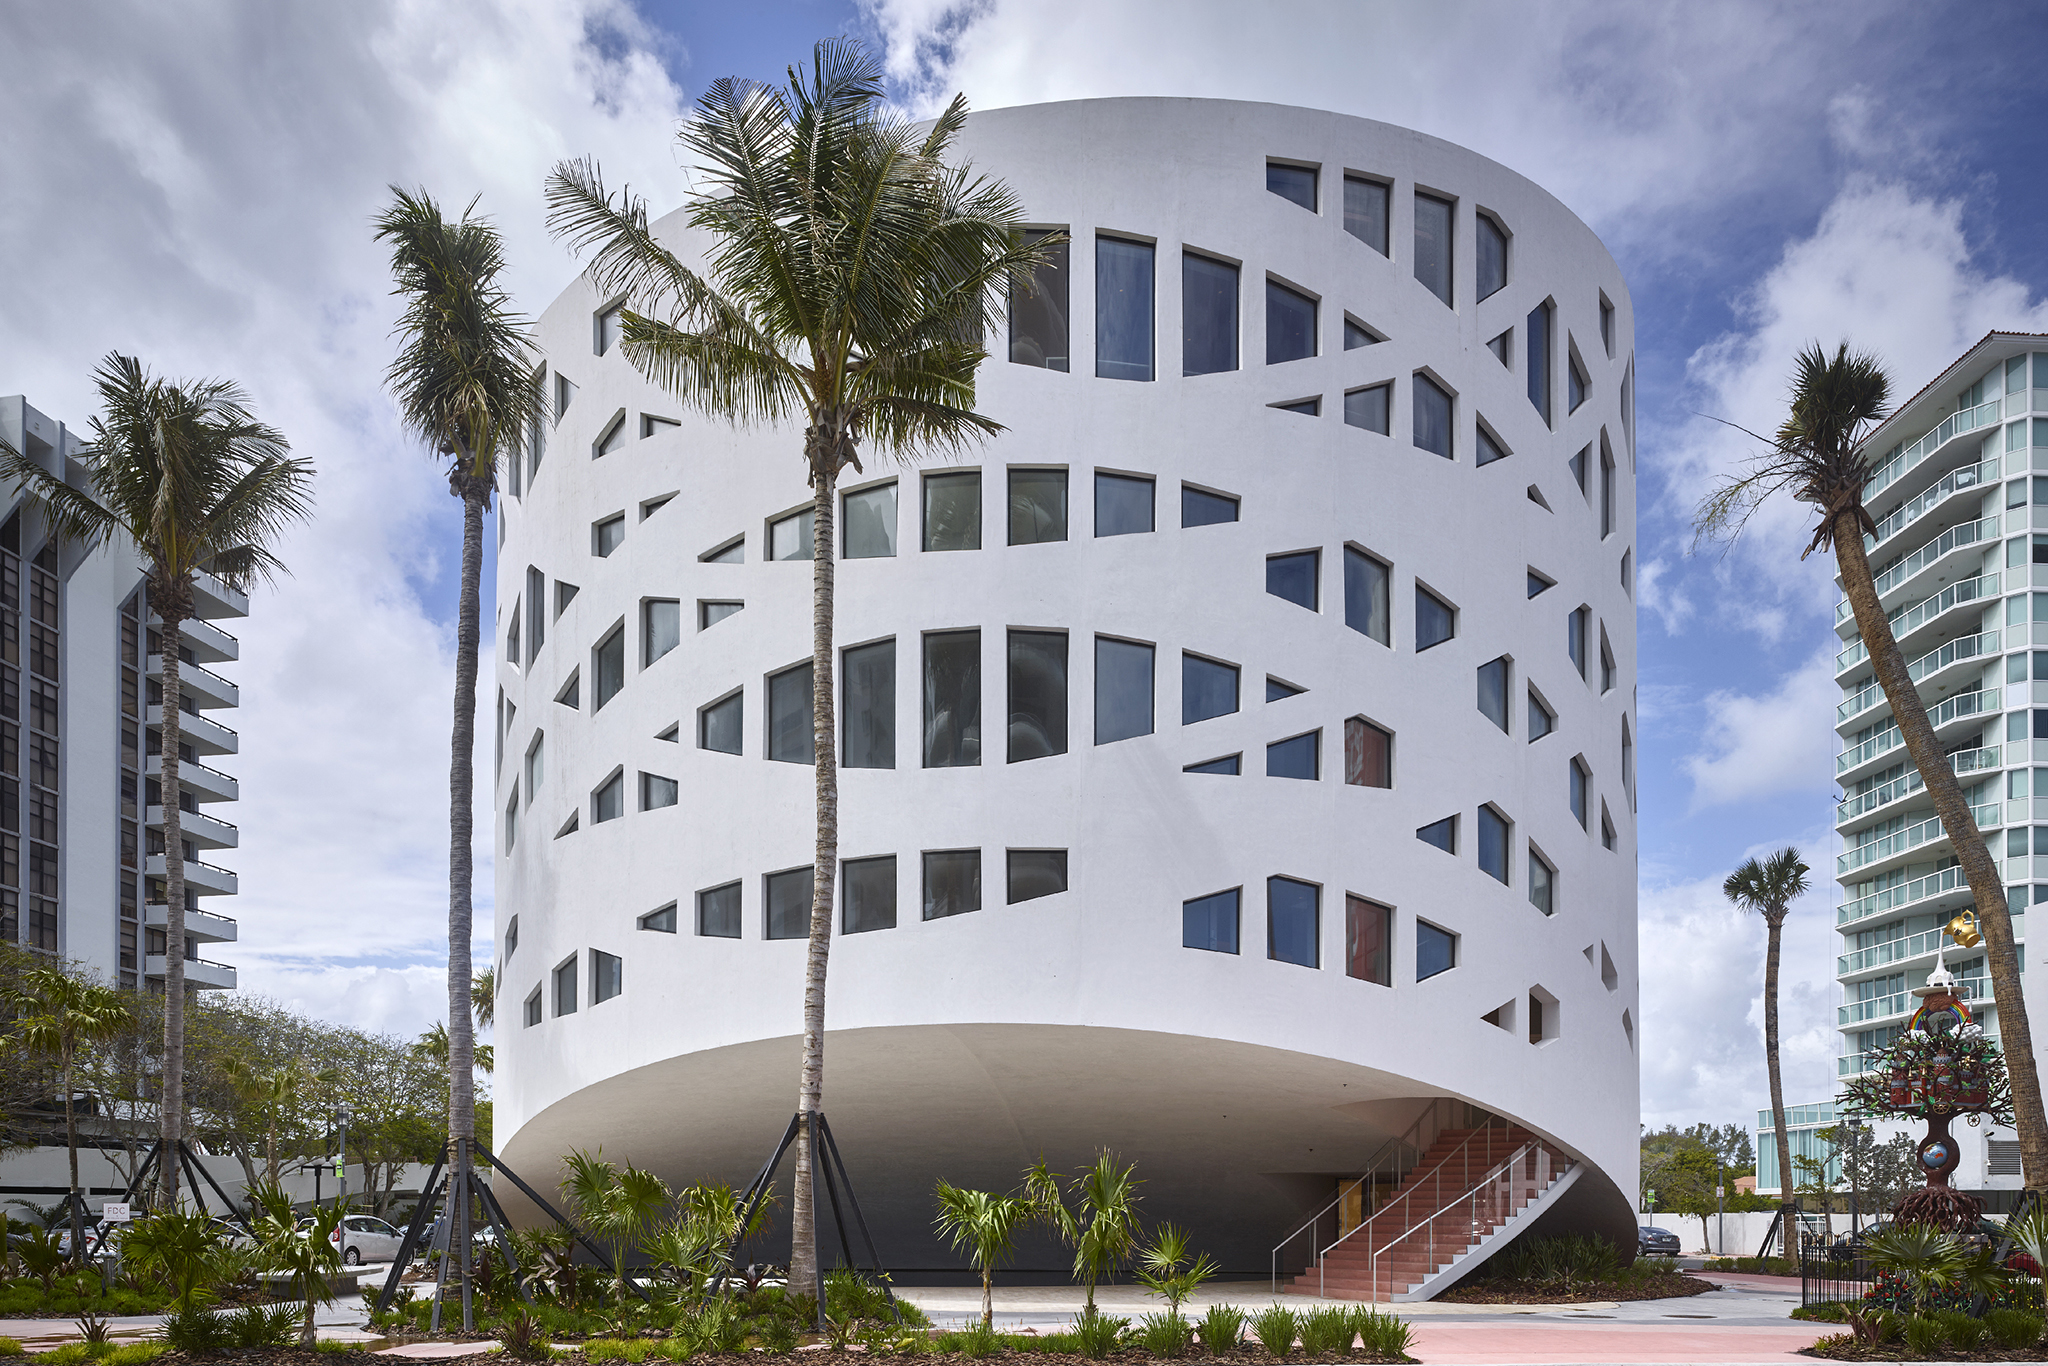 The Faena Art District will throw its own festival during Art Basel